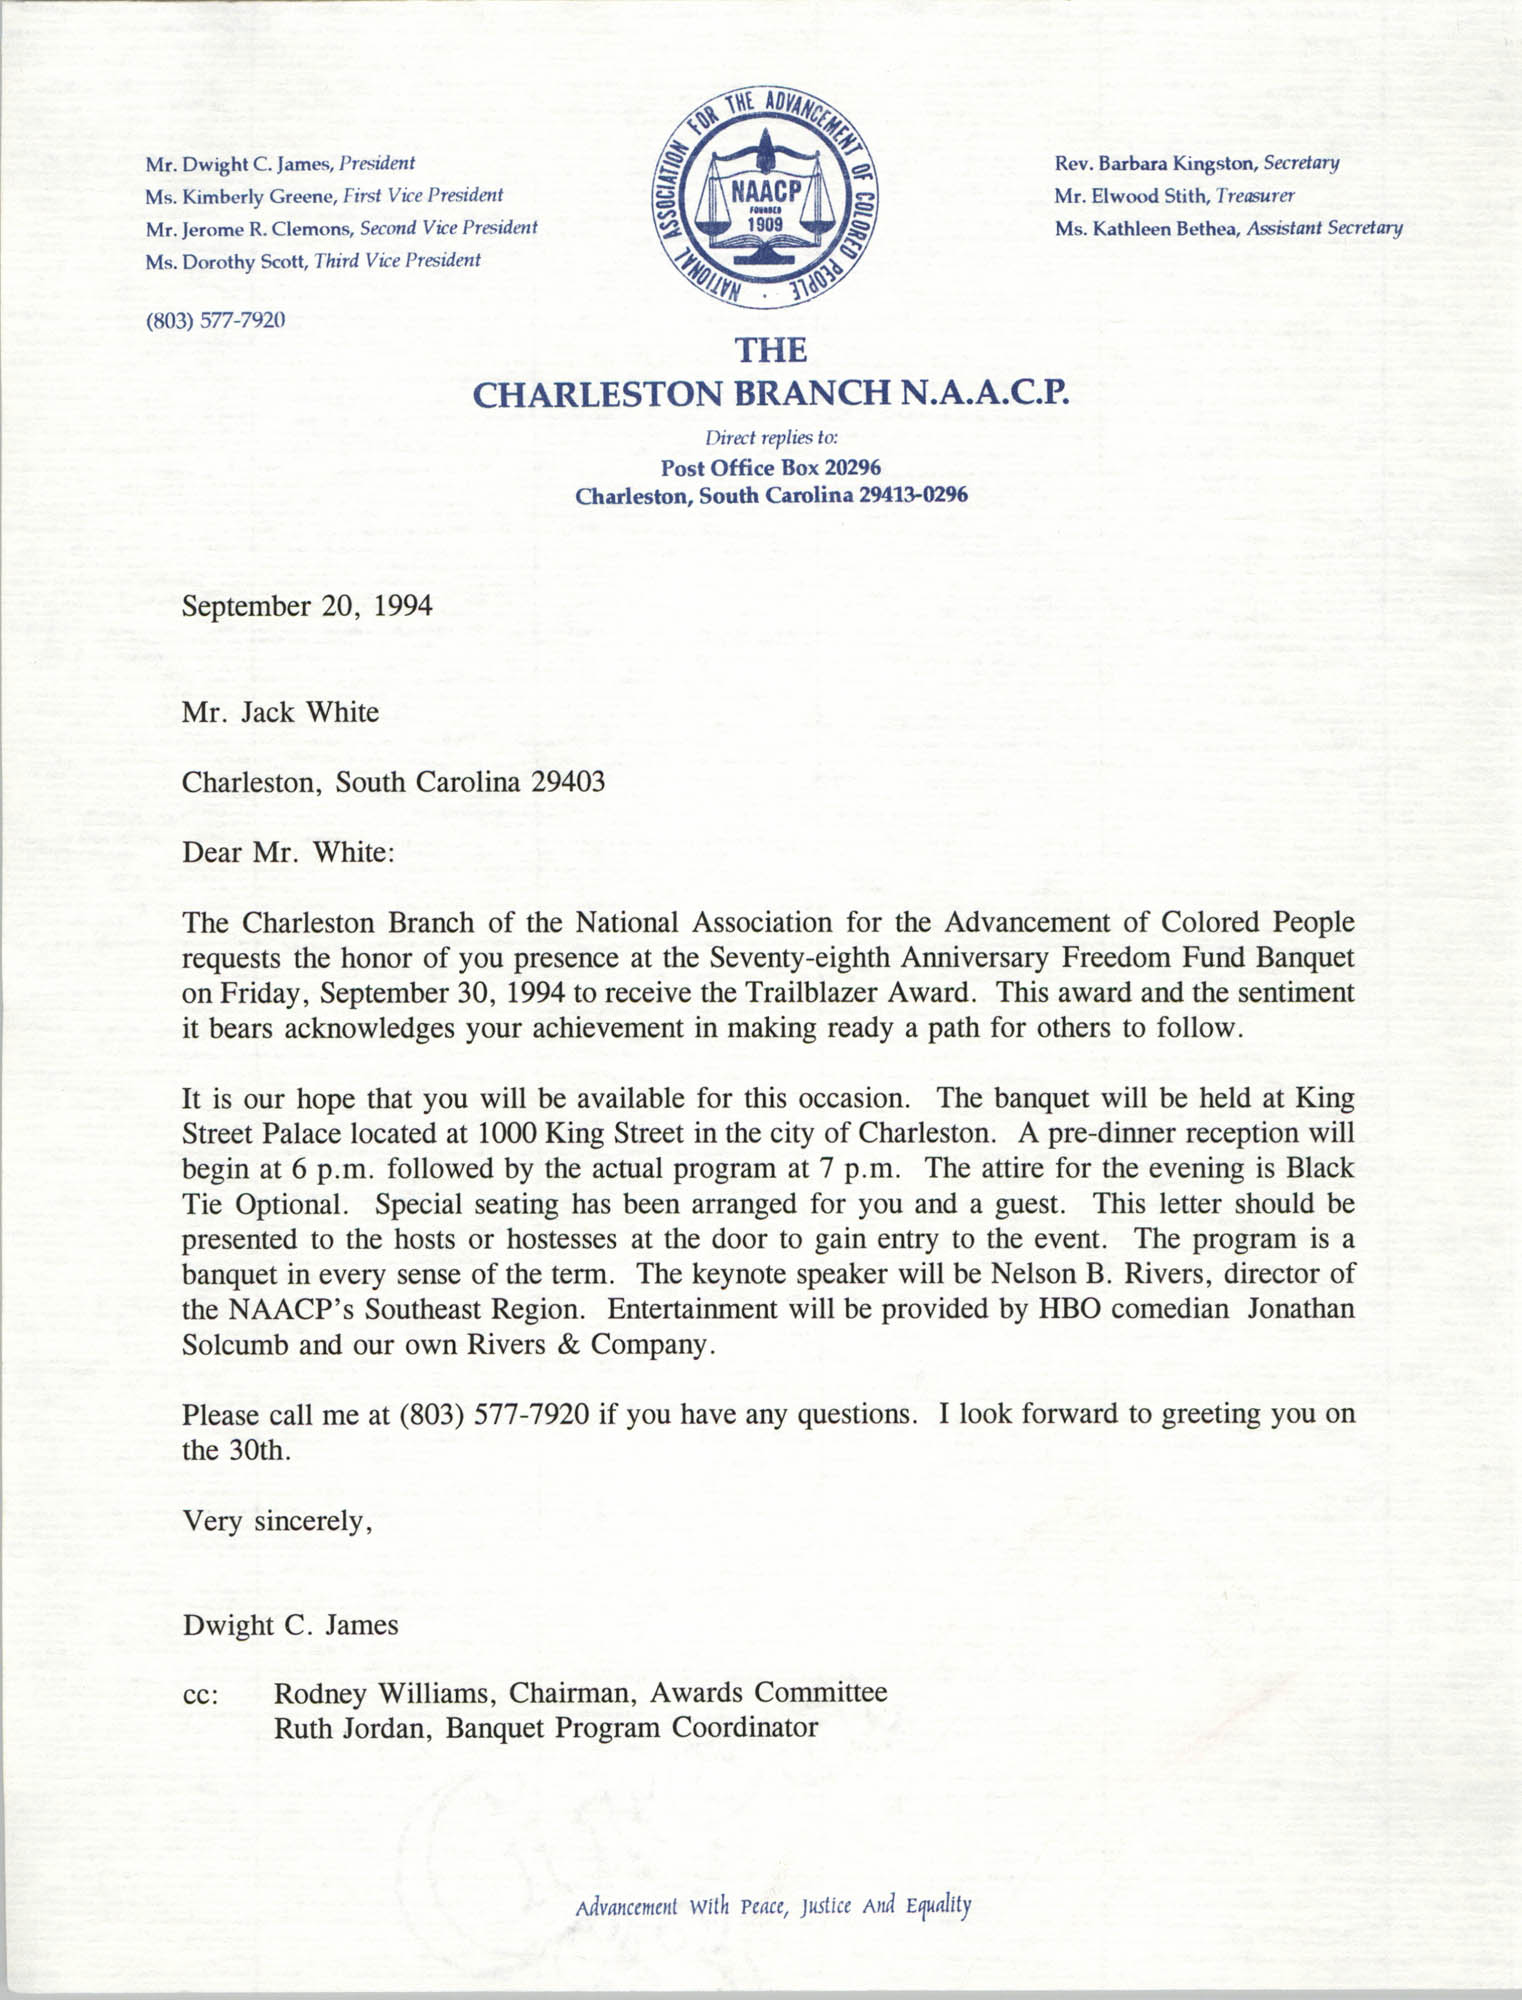 Letter from Dwight C. James to Jack White, September 20, 1994